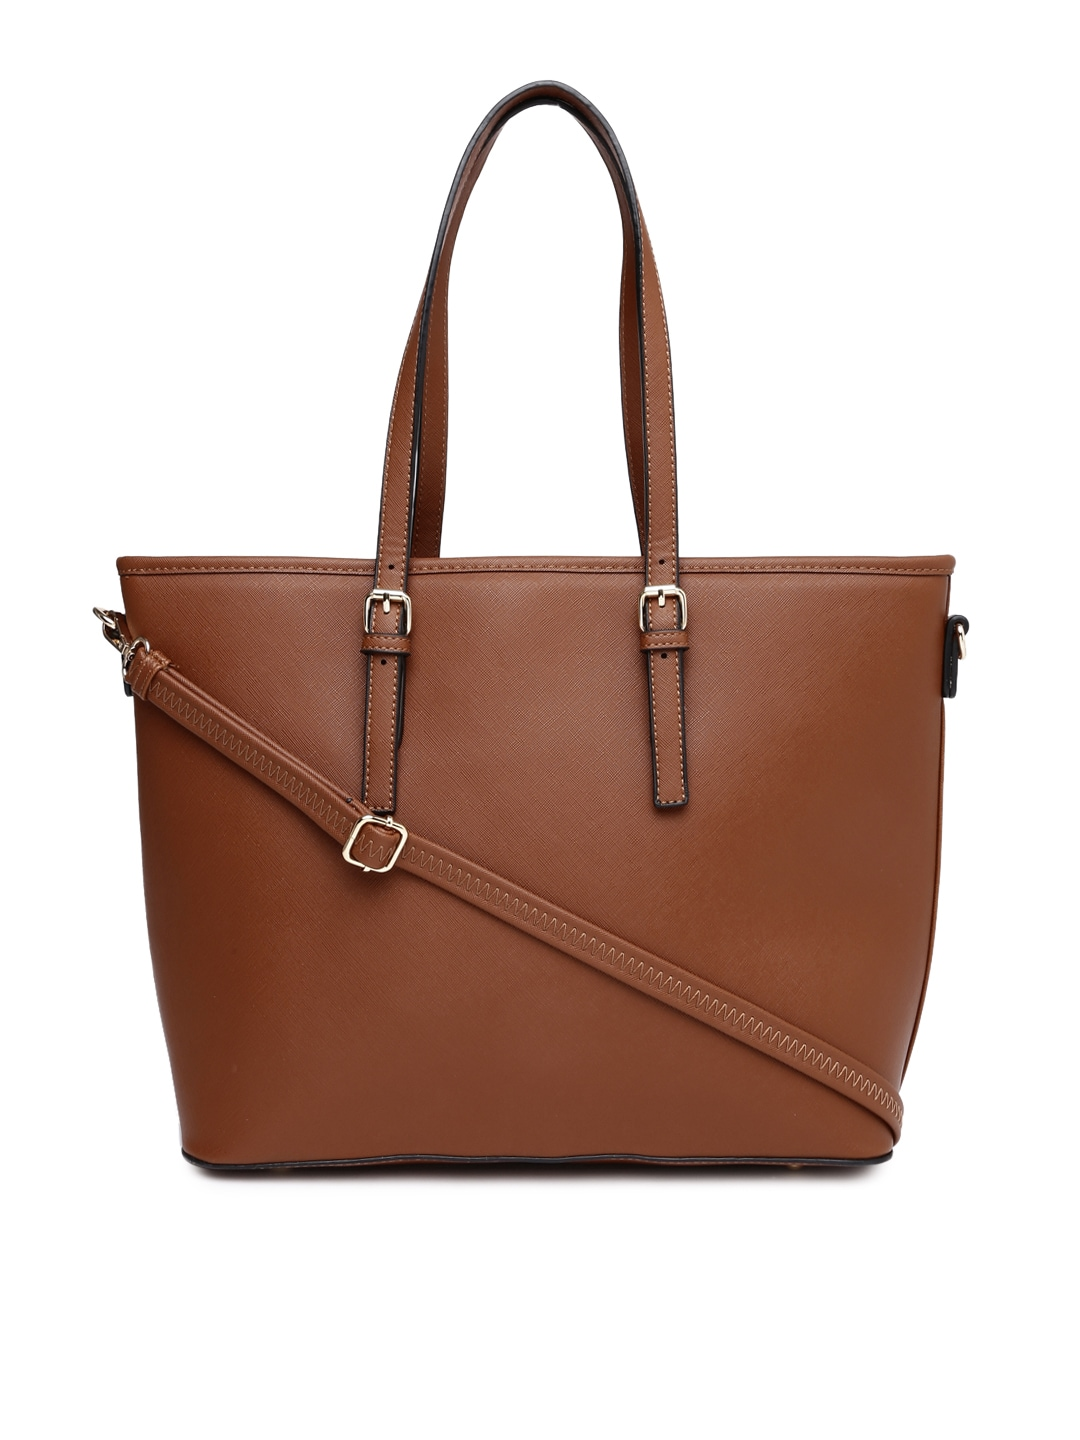 Handbags For Women Leather Designer Online Myntra